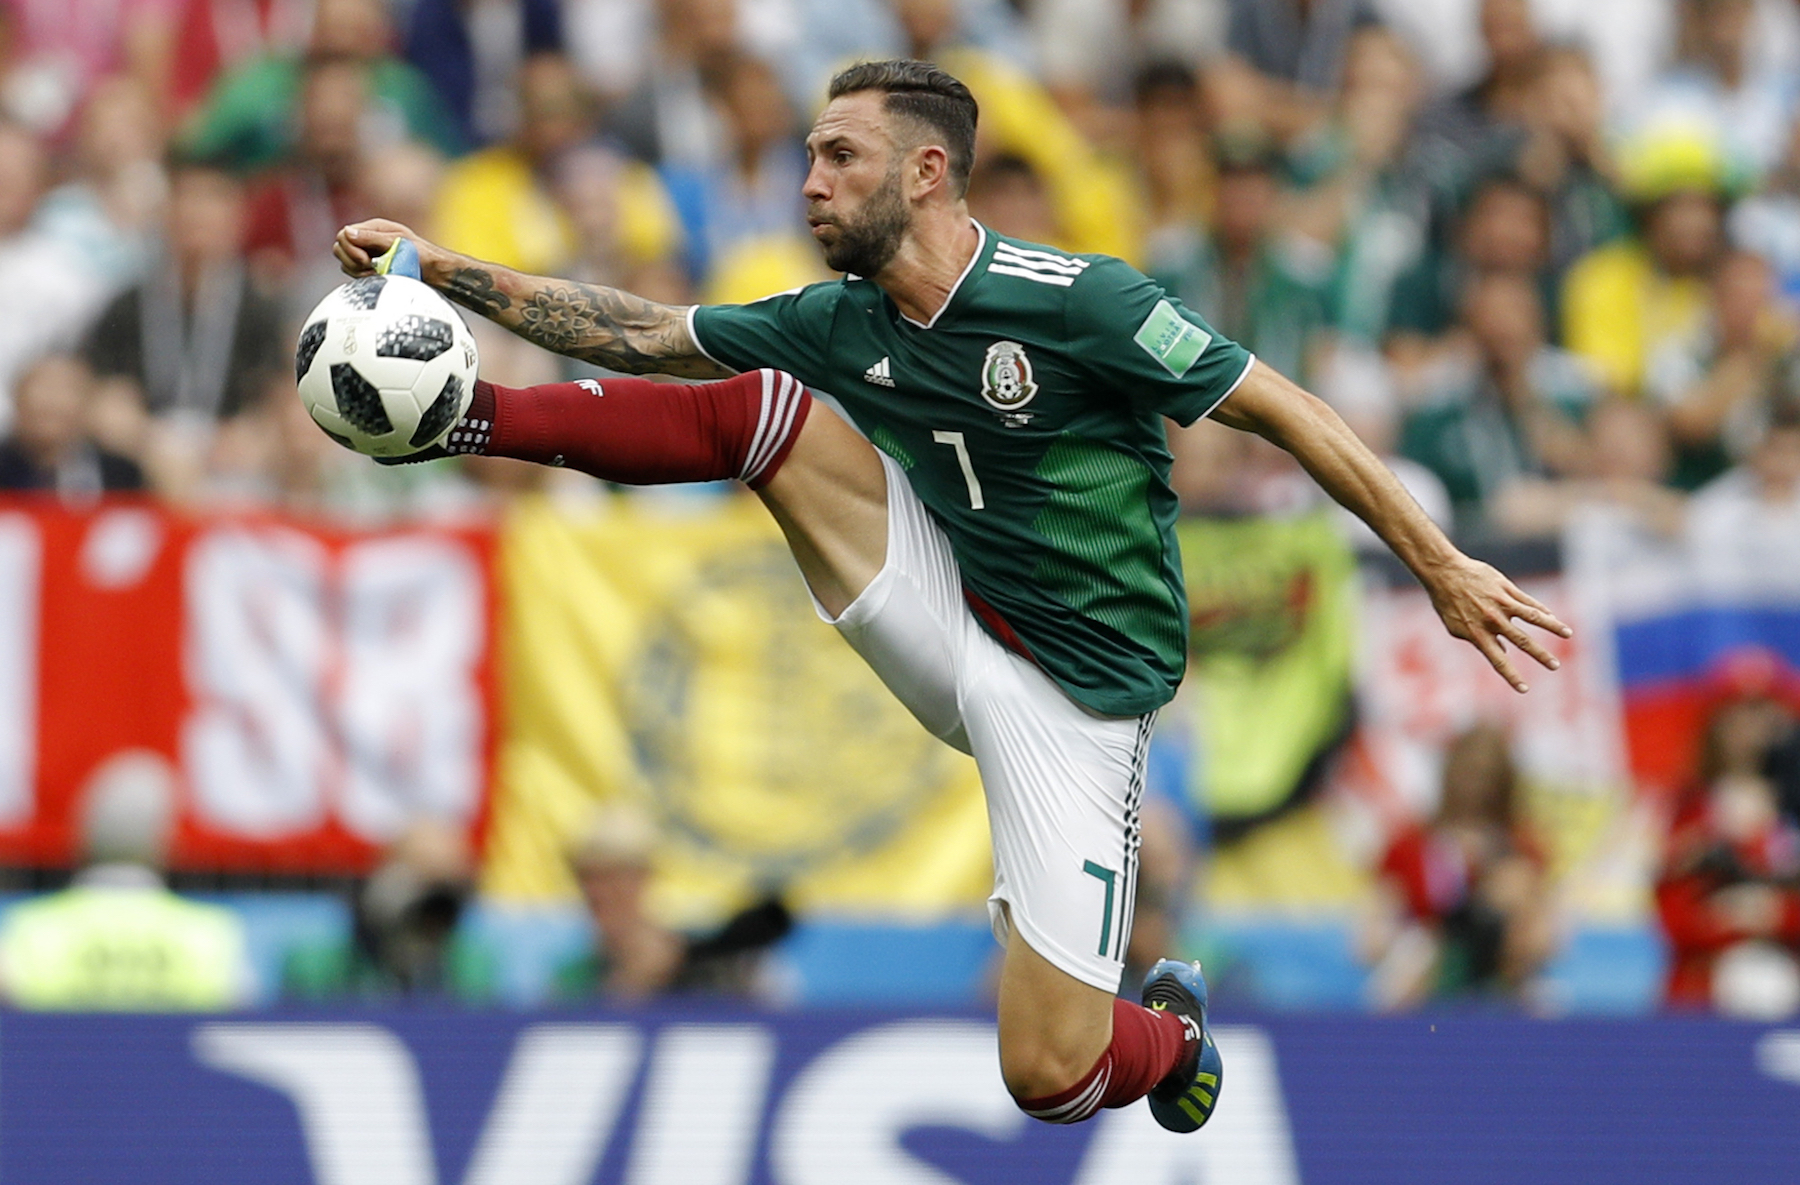 "<div class=""meta image-caption""><div class=""origin-logo origin-image ap""><span>AP</span></div><span class=""caption-text"">Mexico's Miguel Layun controls the ball during the group F match between Germany and Mexico at the 2018 soccer World Cup in the Luzhniki Stadium. (AP Photo/Victor R. Caivano)</span></div>"